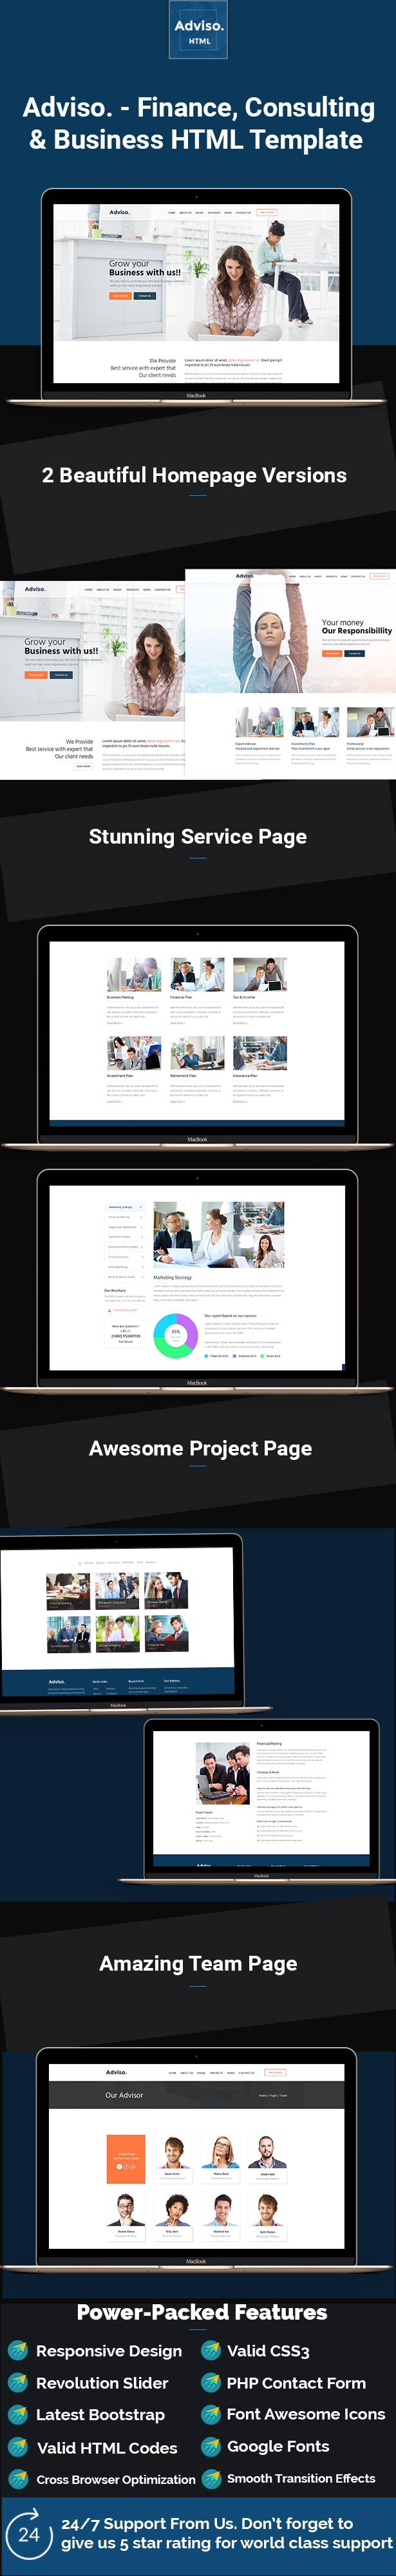 Adviso - Finance, Consulting, Business HTML Template by TheMazine ...